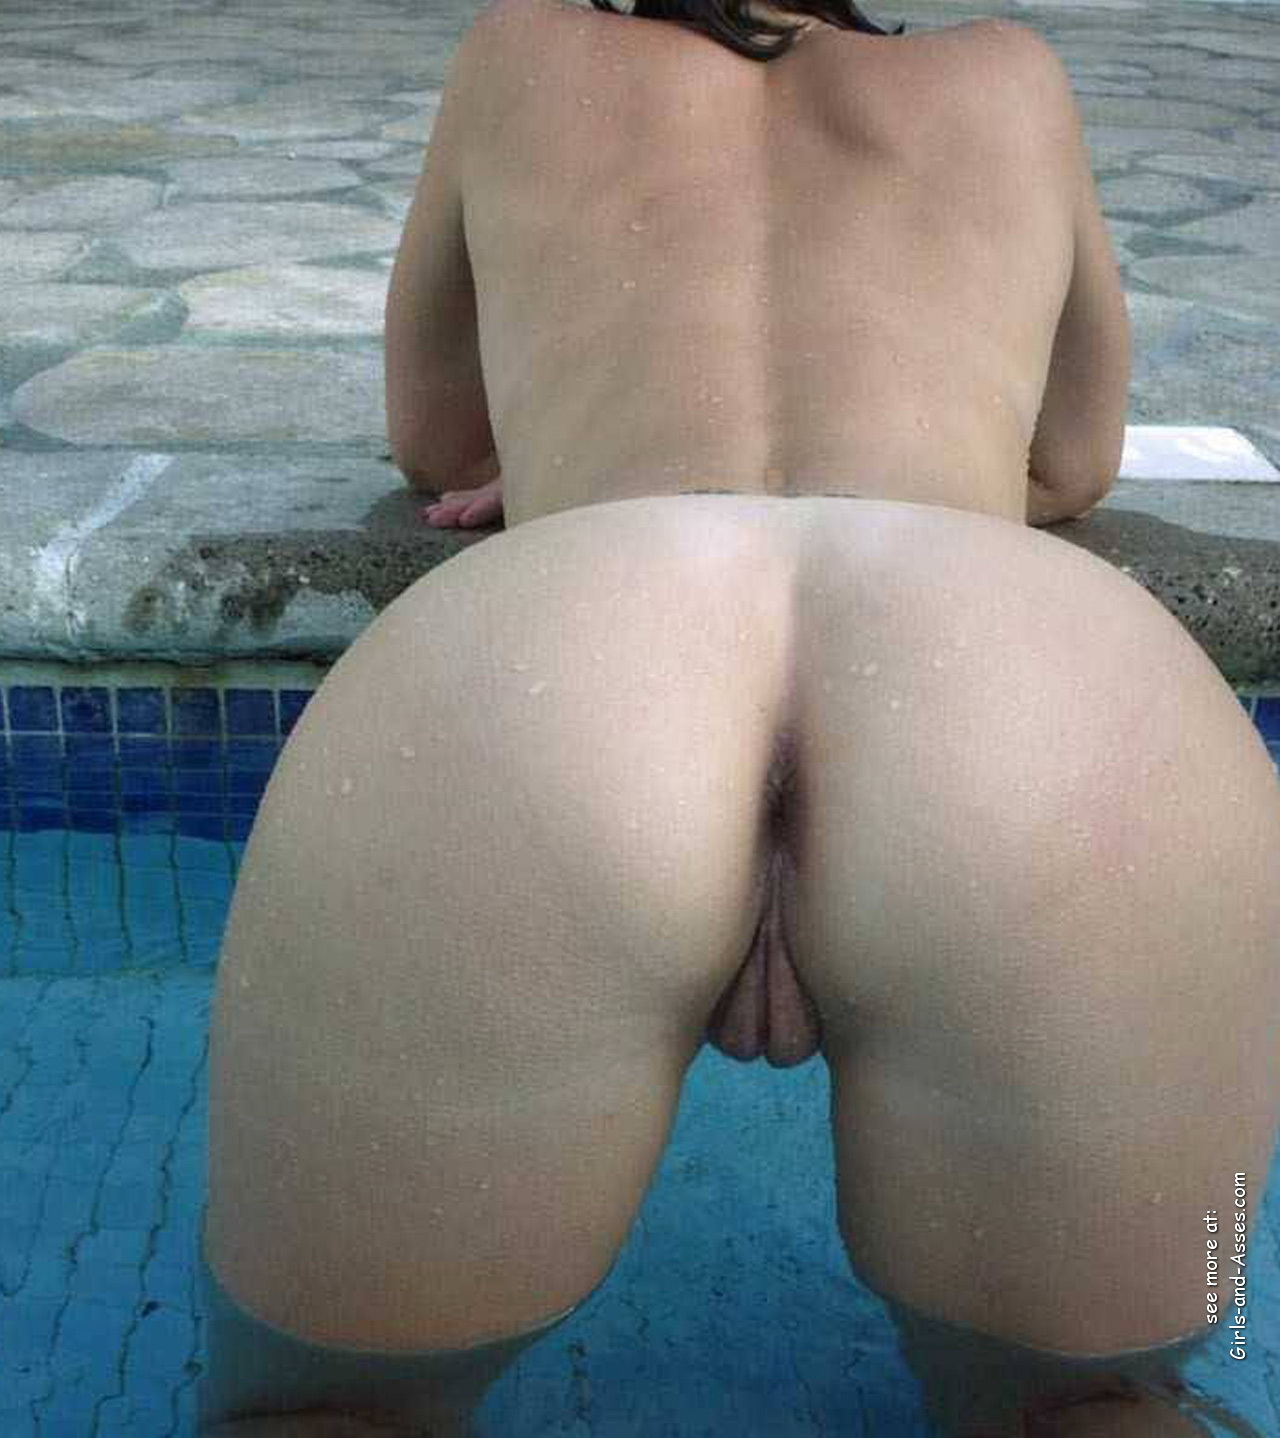 naked ass in doggystyle at the pool photography 01845